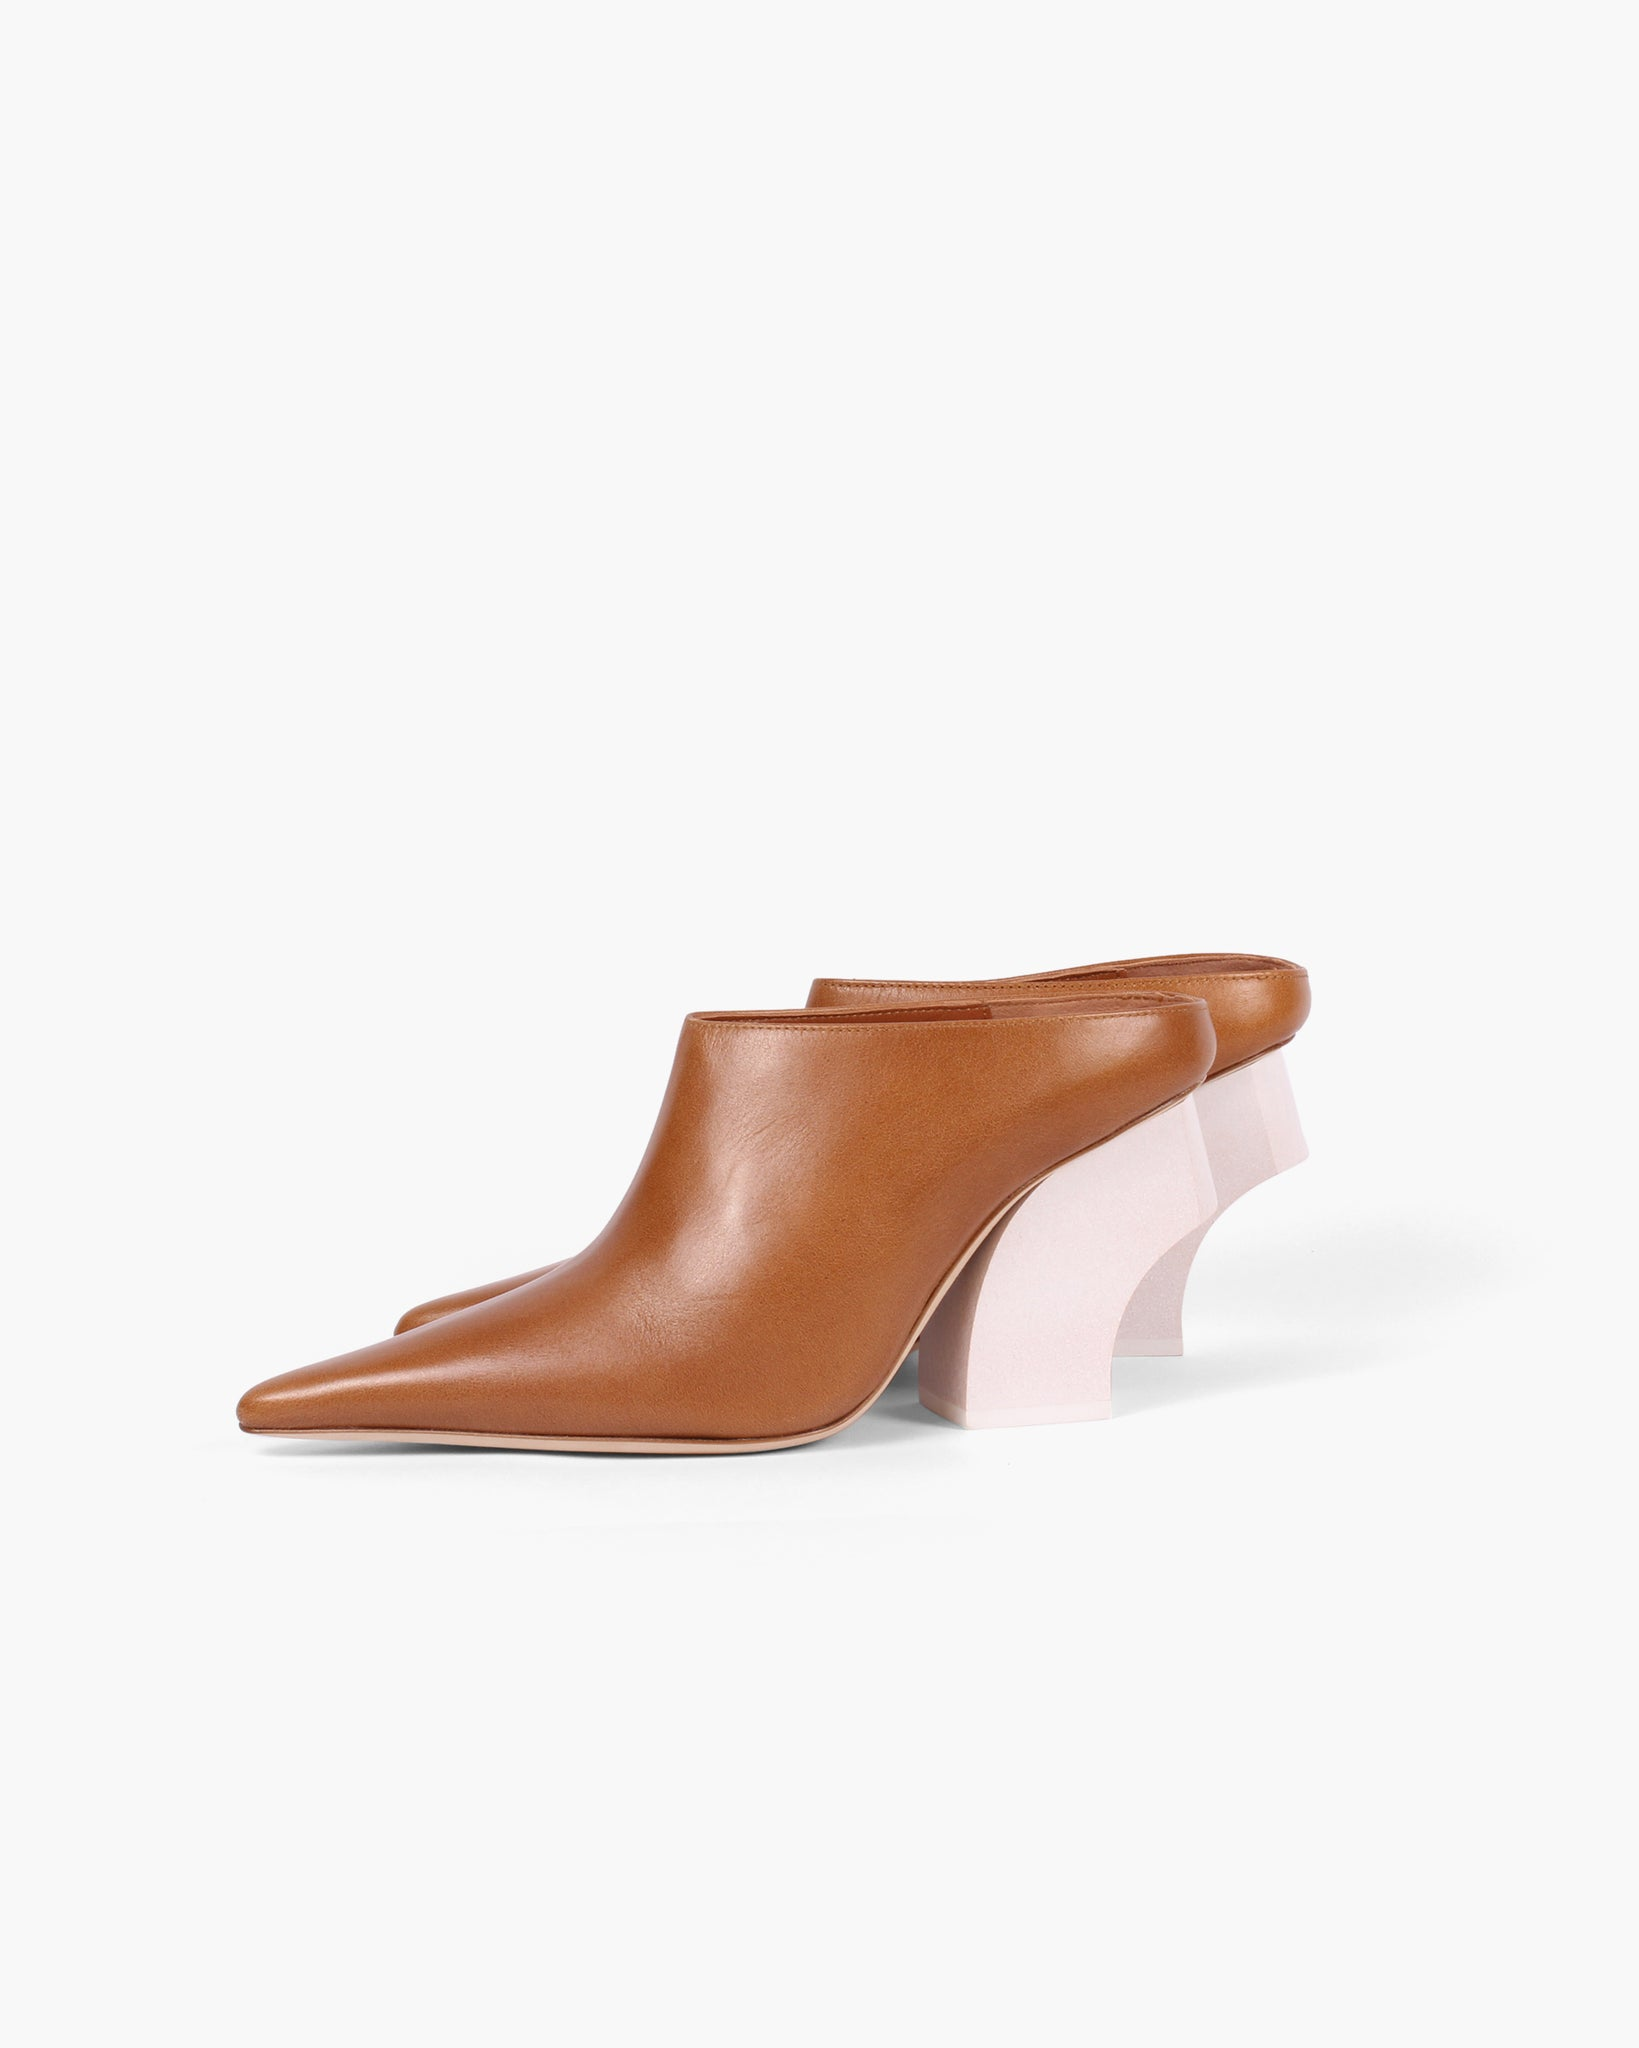 Yasmin Mules Leather Brown with Curved White Wooden Heels - ADDITIONAL 10% OFF SALE PRICE